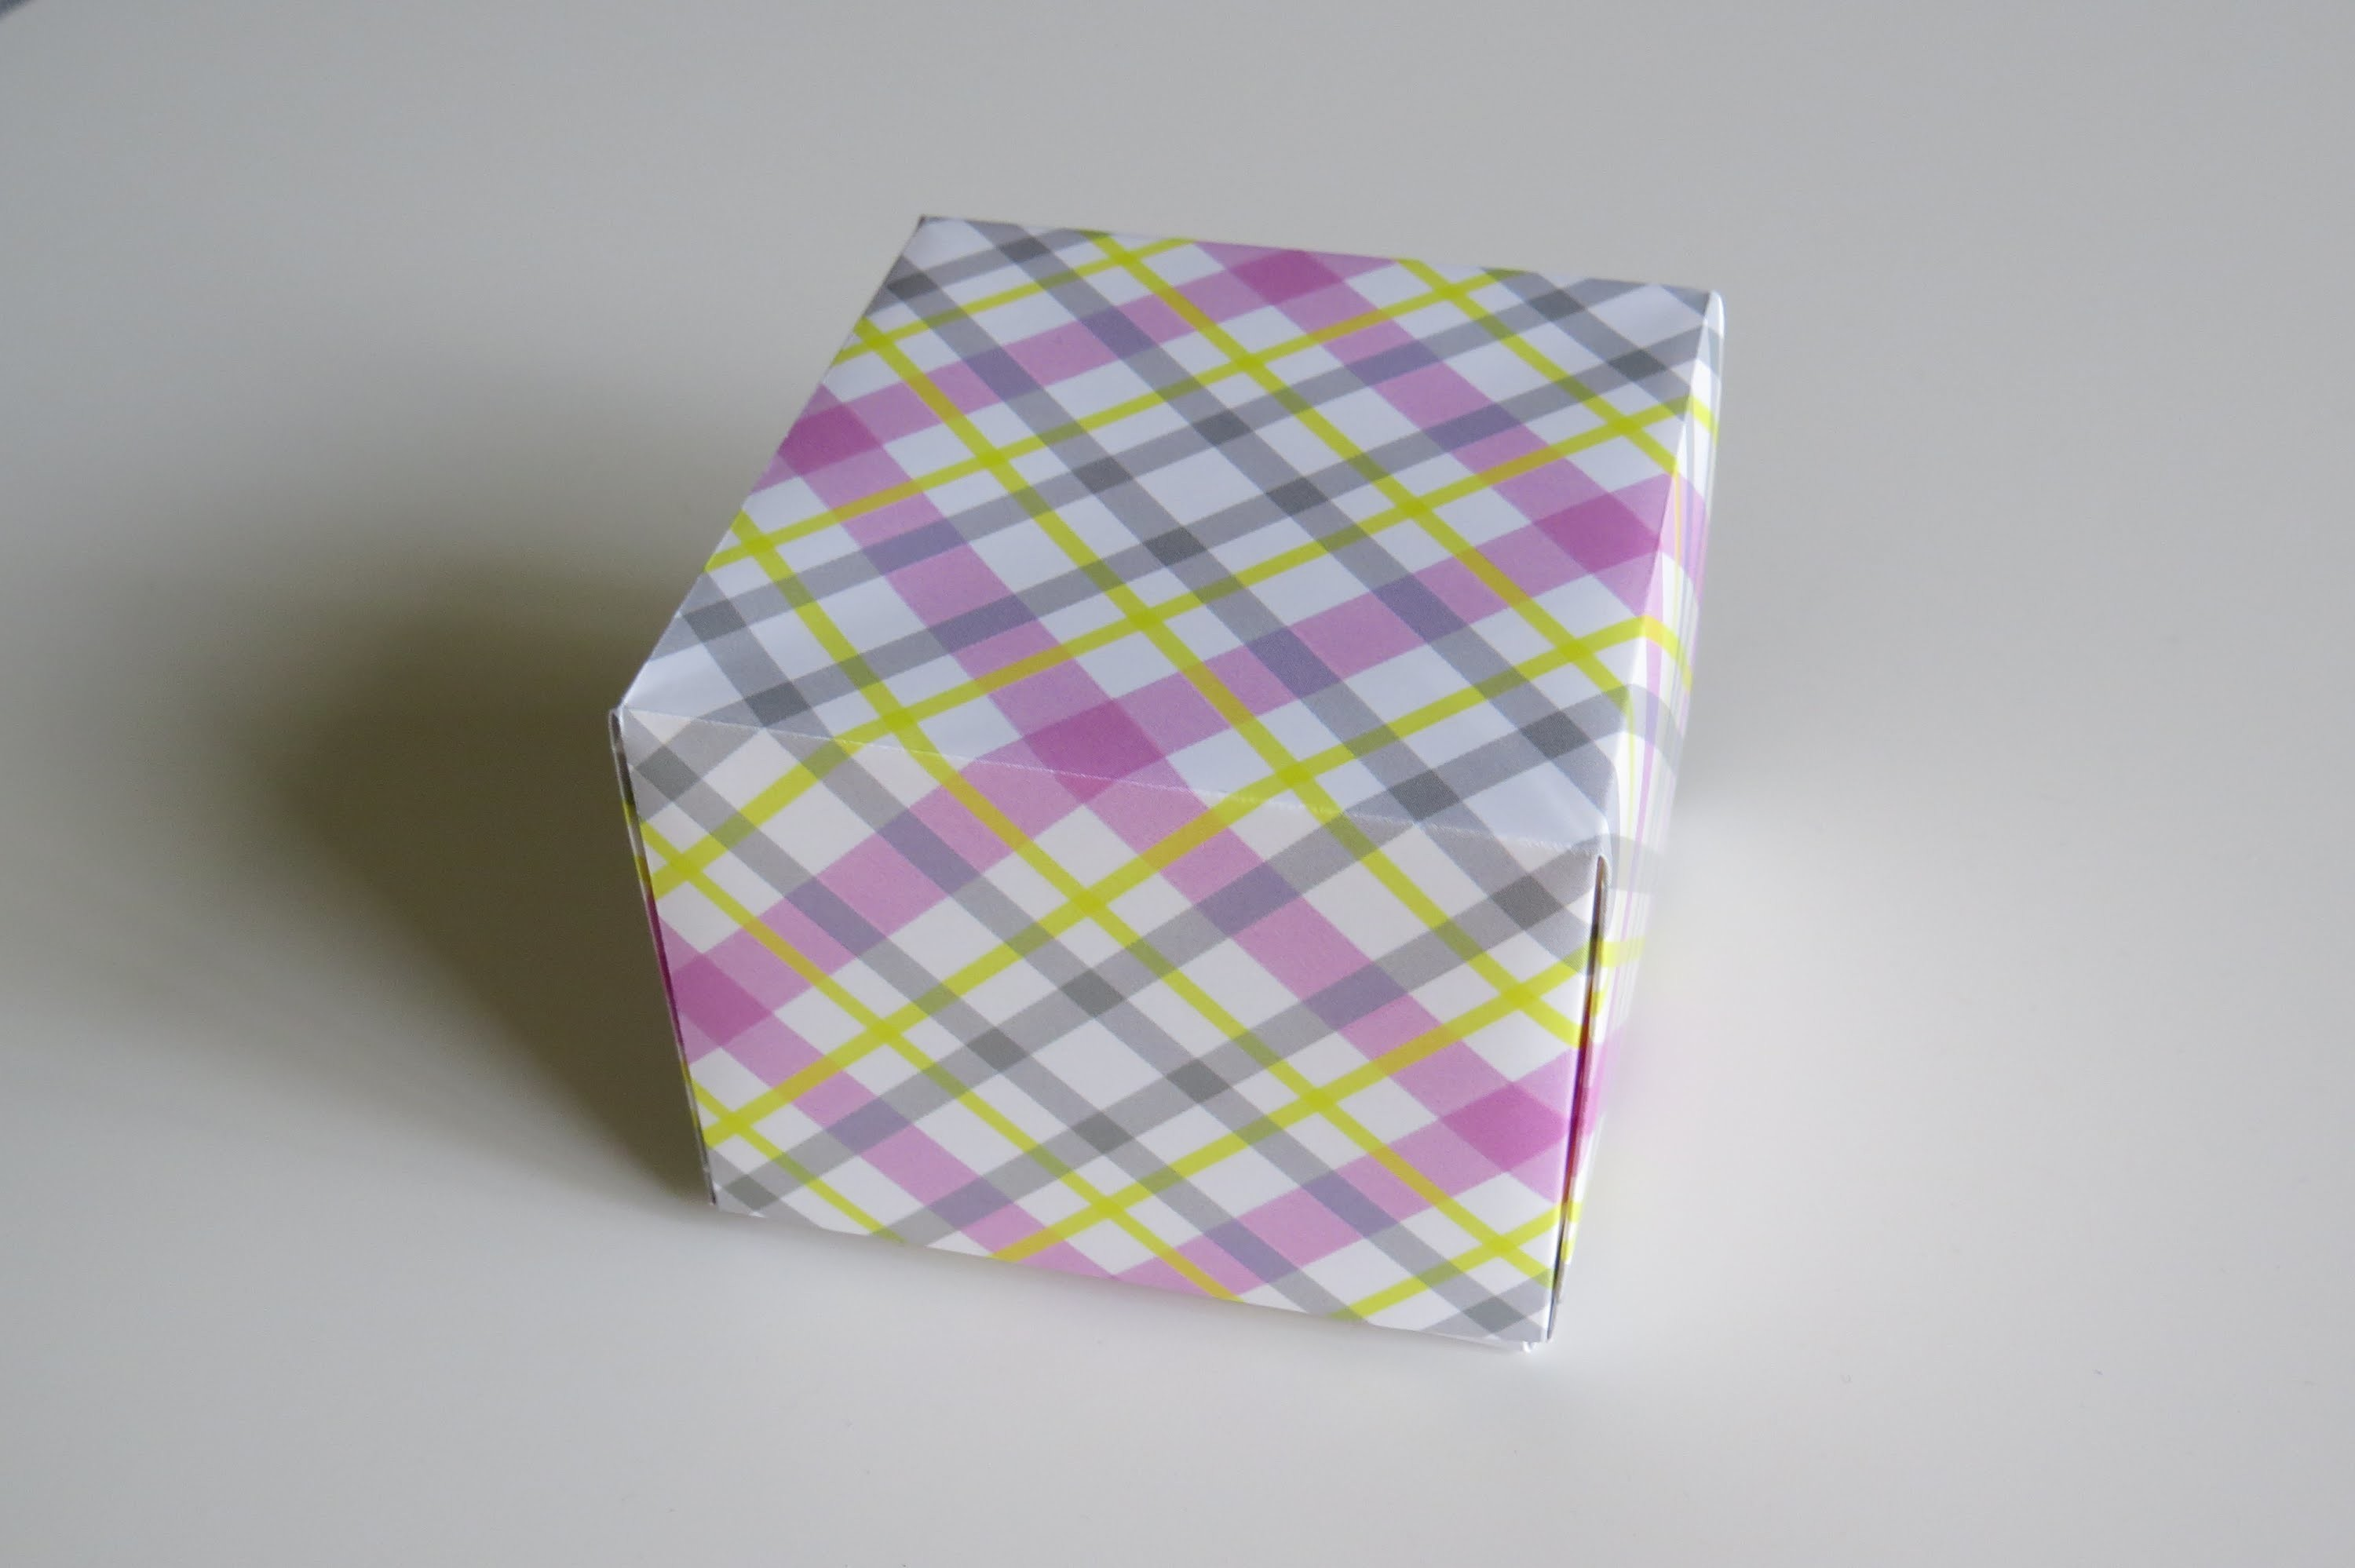 An Origami Box from  a Rectangular Sheet